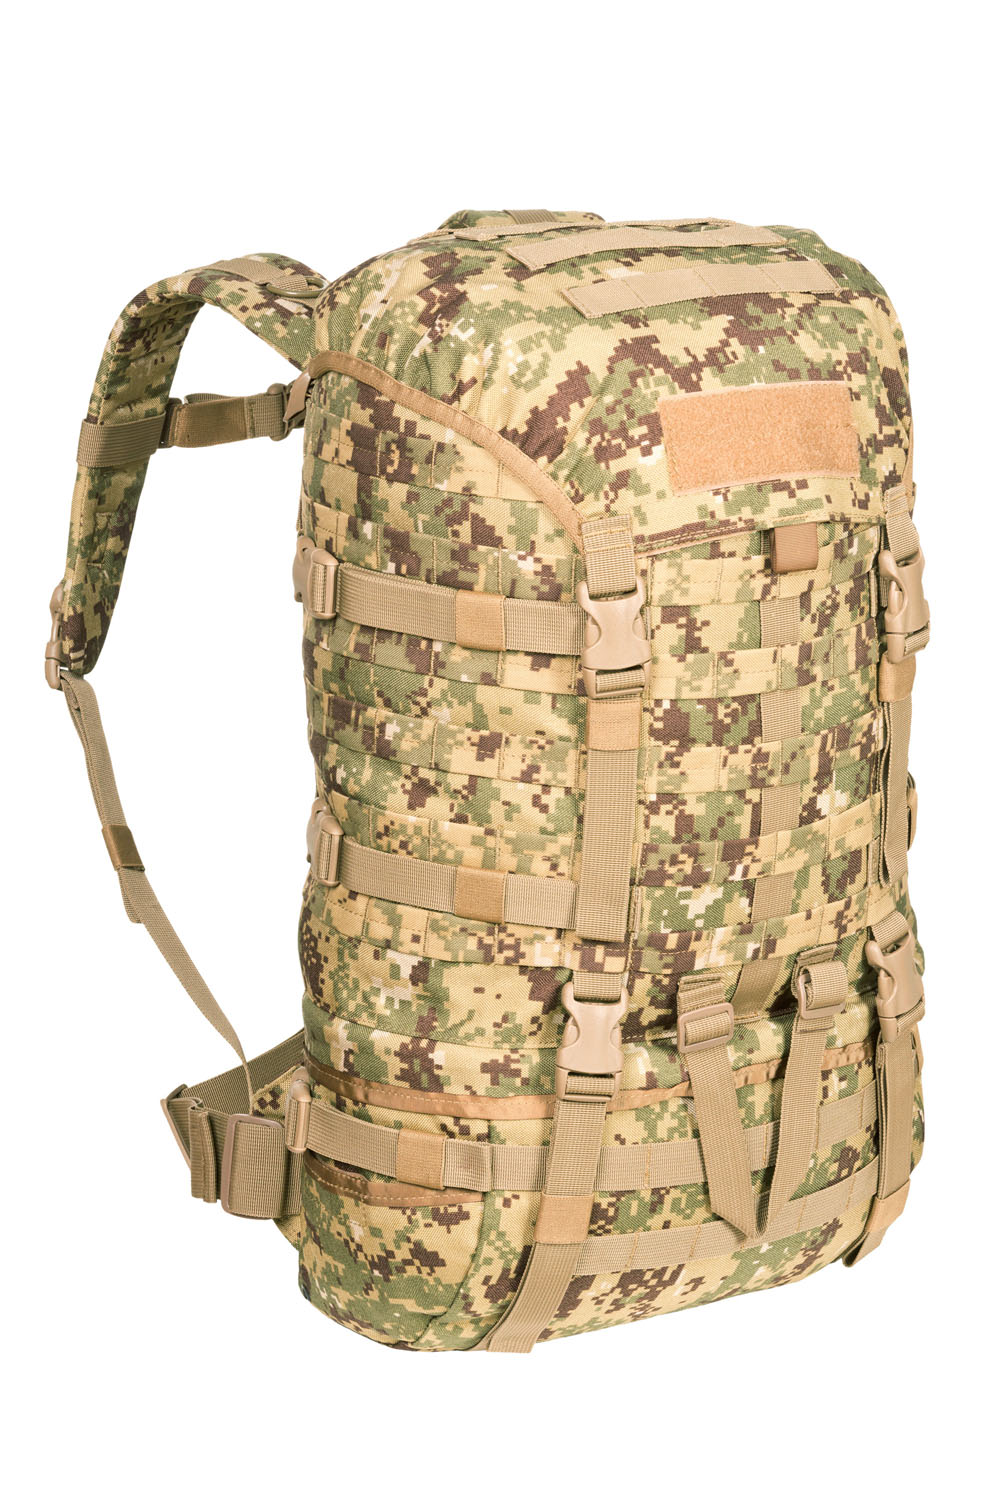 Mountain patrol backpack